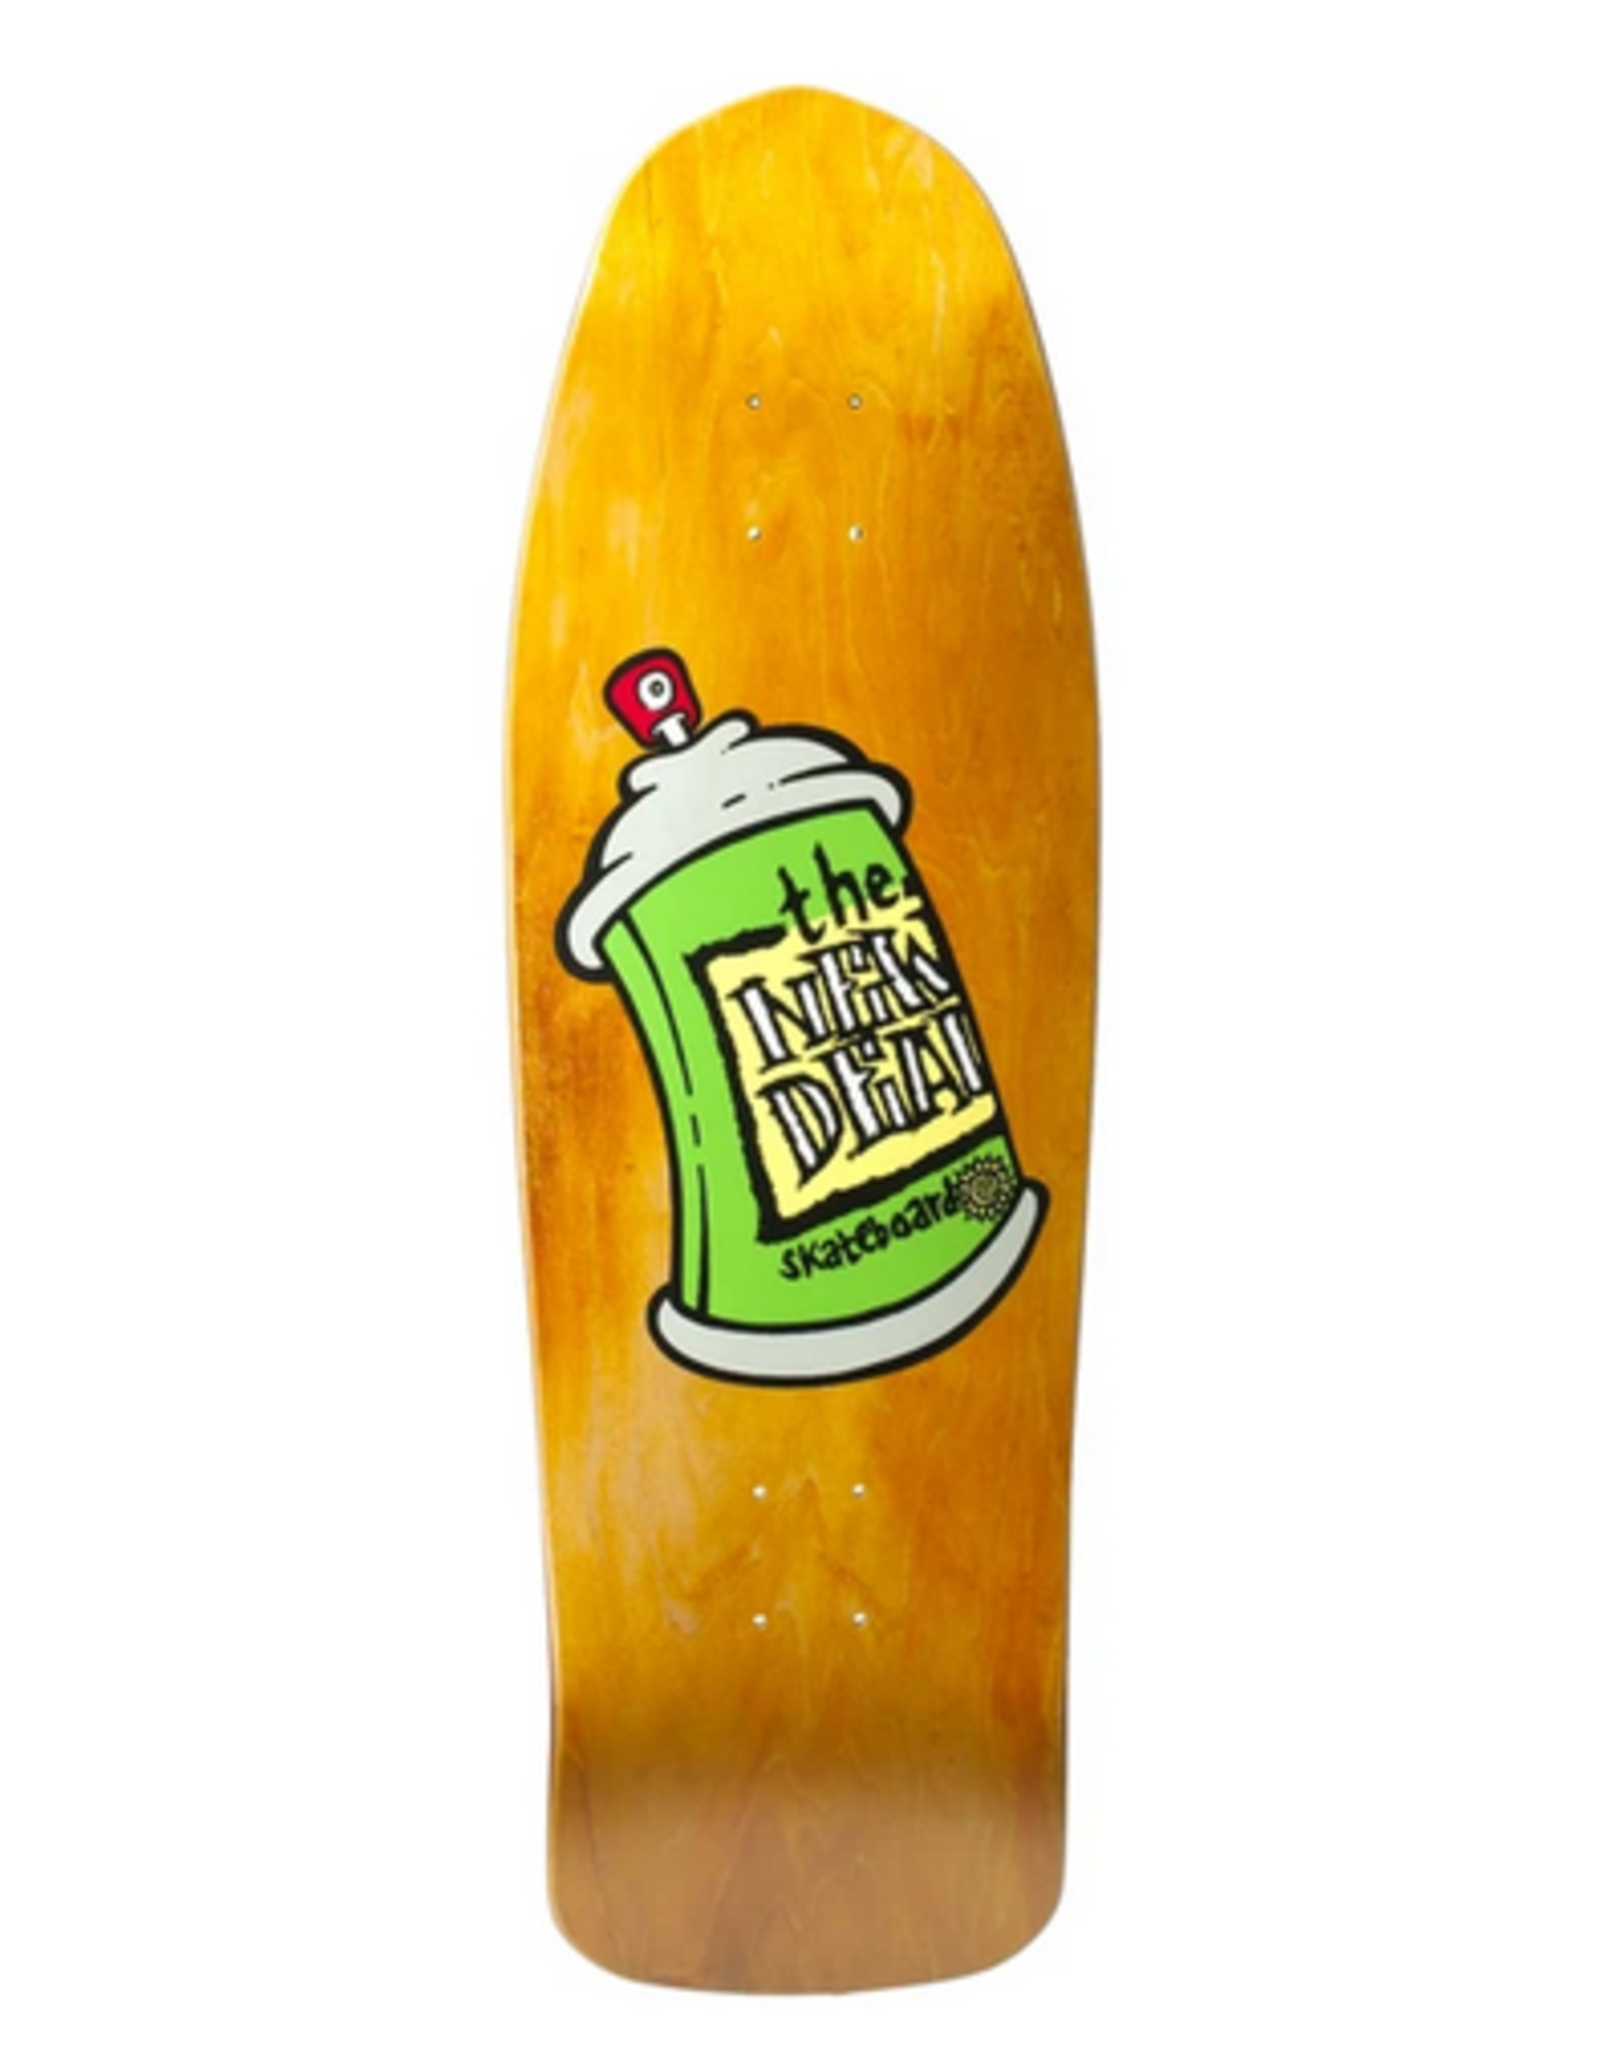 NEW DEAL NEW DEAL ORANGE SPRAY CAN 9.75 X 31.5 DECK